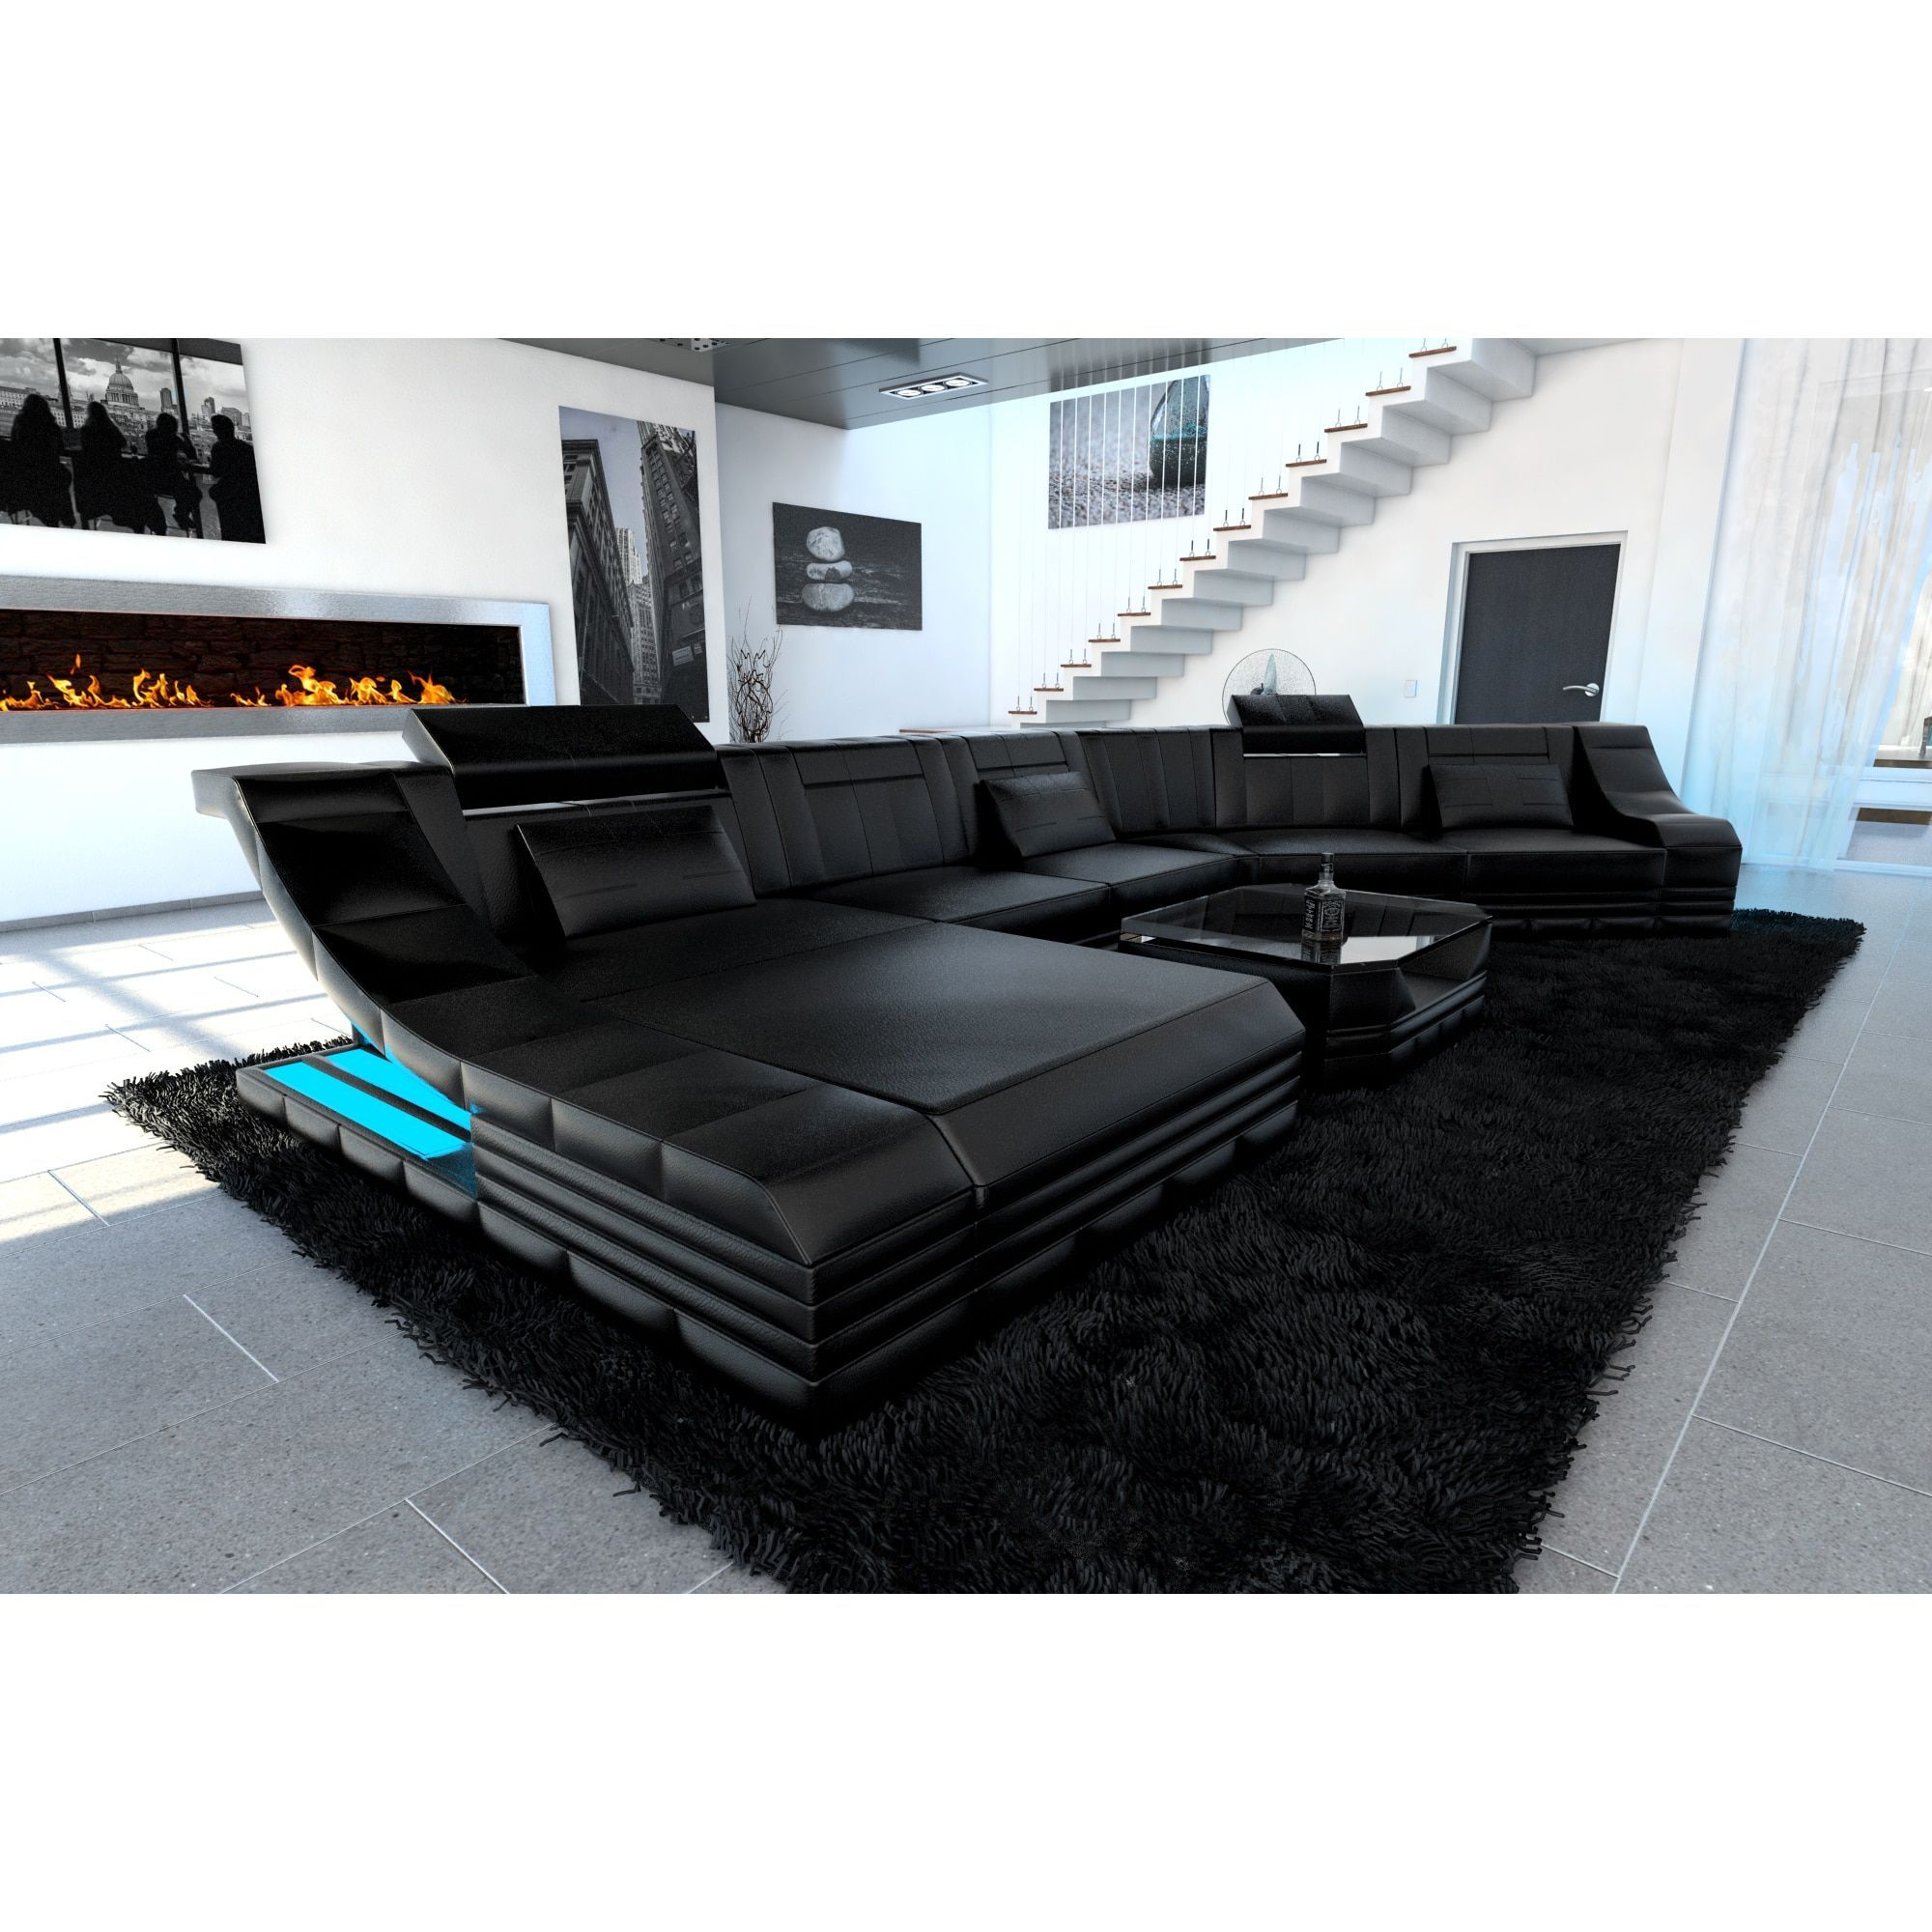 Luxury Sectional Sofa New York Cl Led Lights Luxury Rooms Luxury Furniture Sectional Sofa